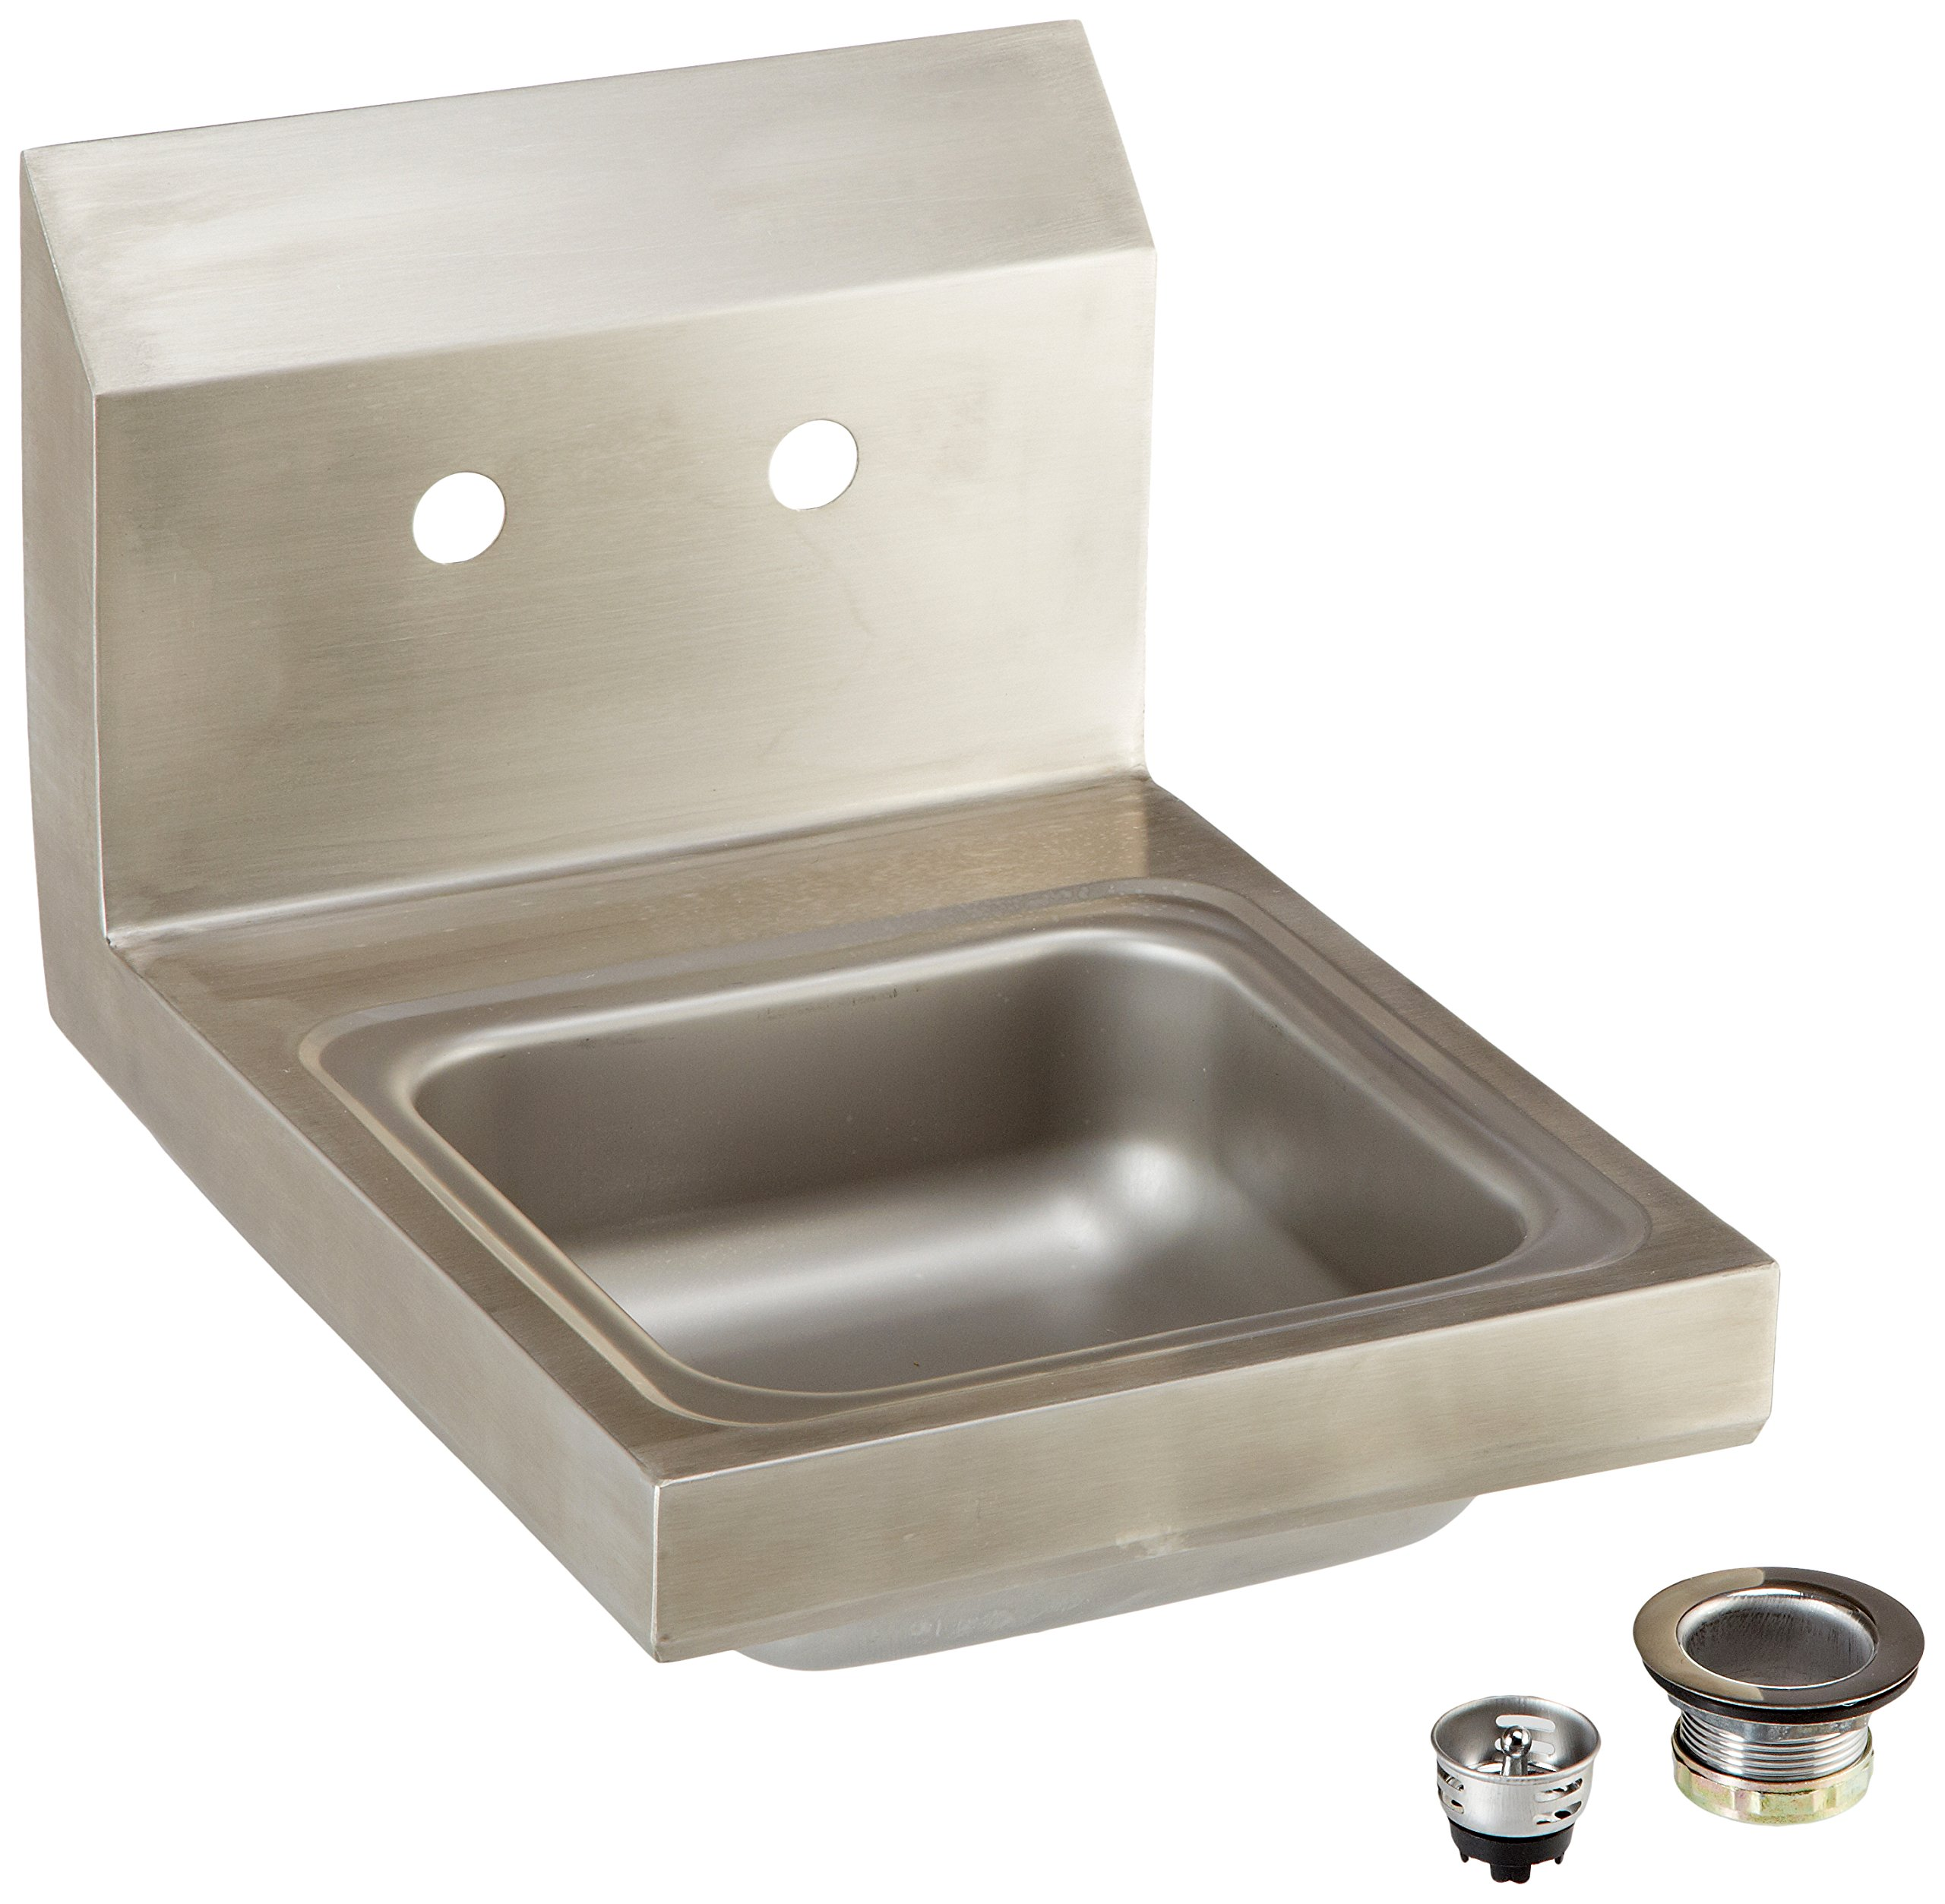 John Boos PBHS-W-0909 Stainless Steel 304 Pro-Bowl Hand Sink, Splash Mount Faucet Location, 9'' Length x 9'' Width x 5'' Depth